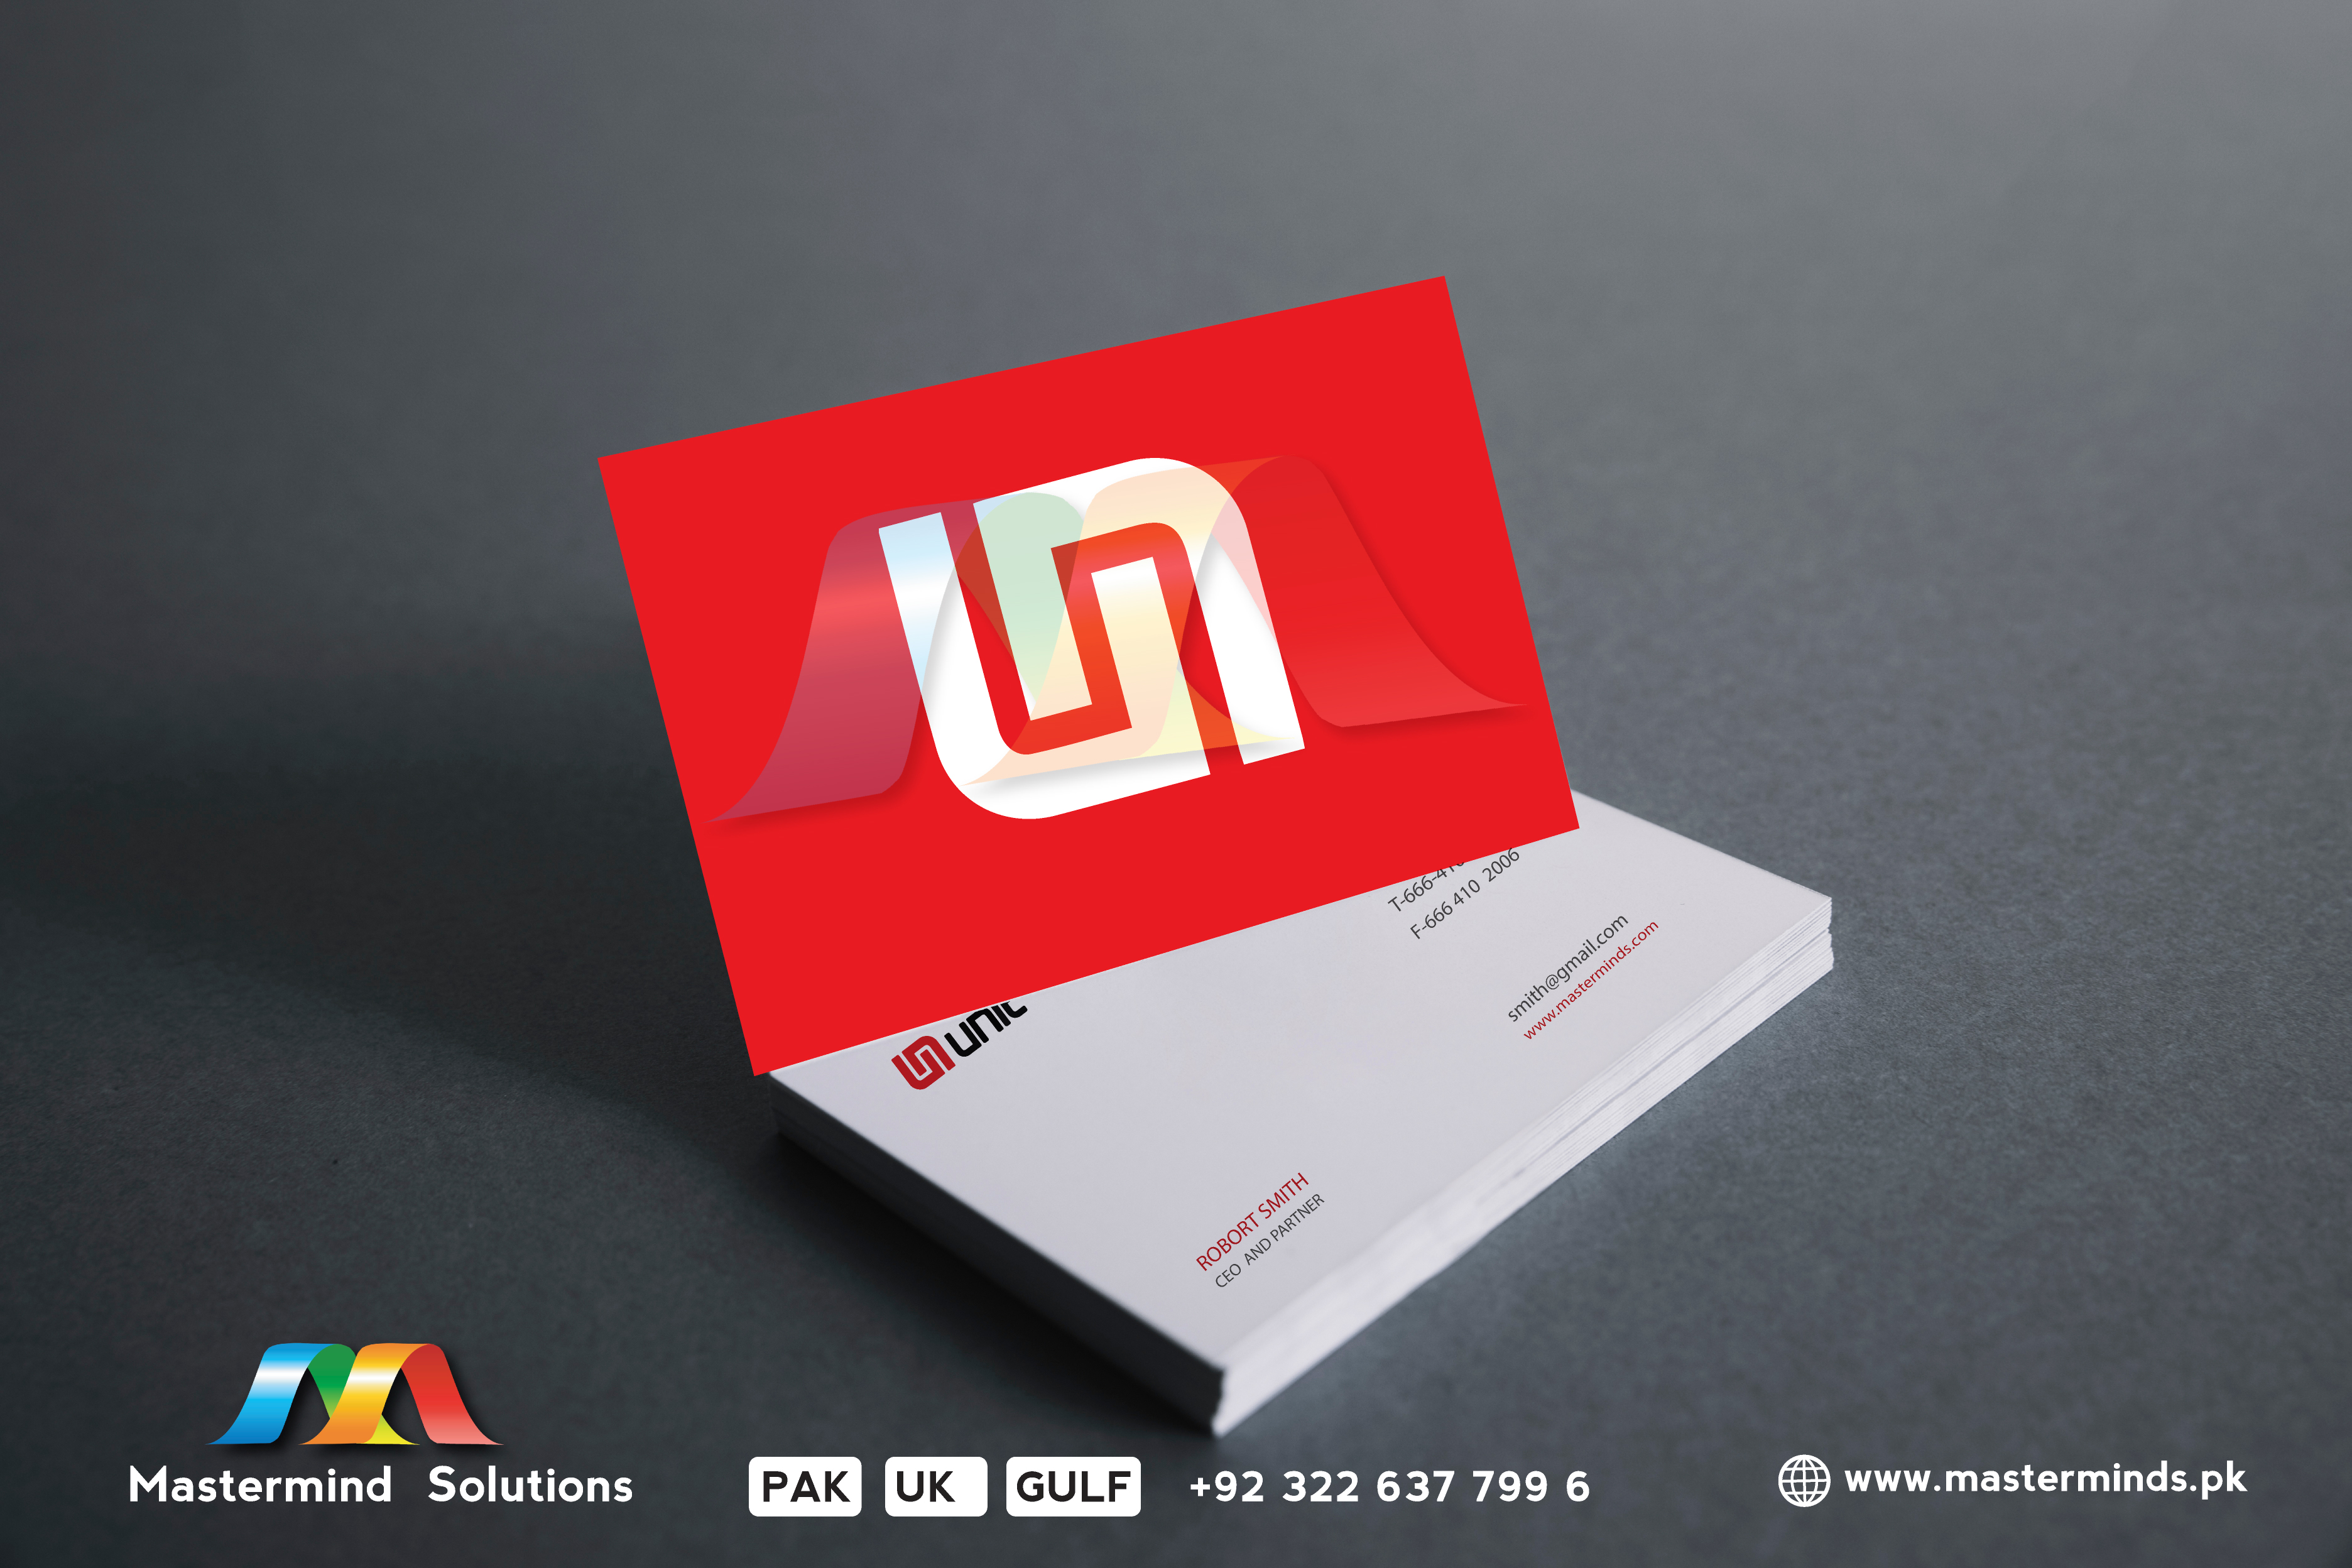 OUR CLIENT WORK!